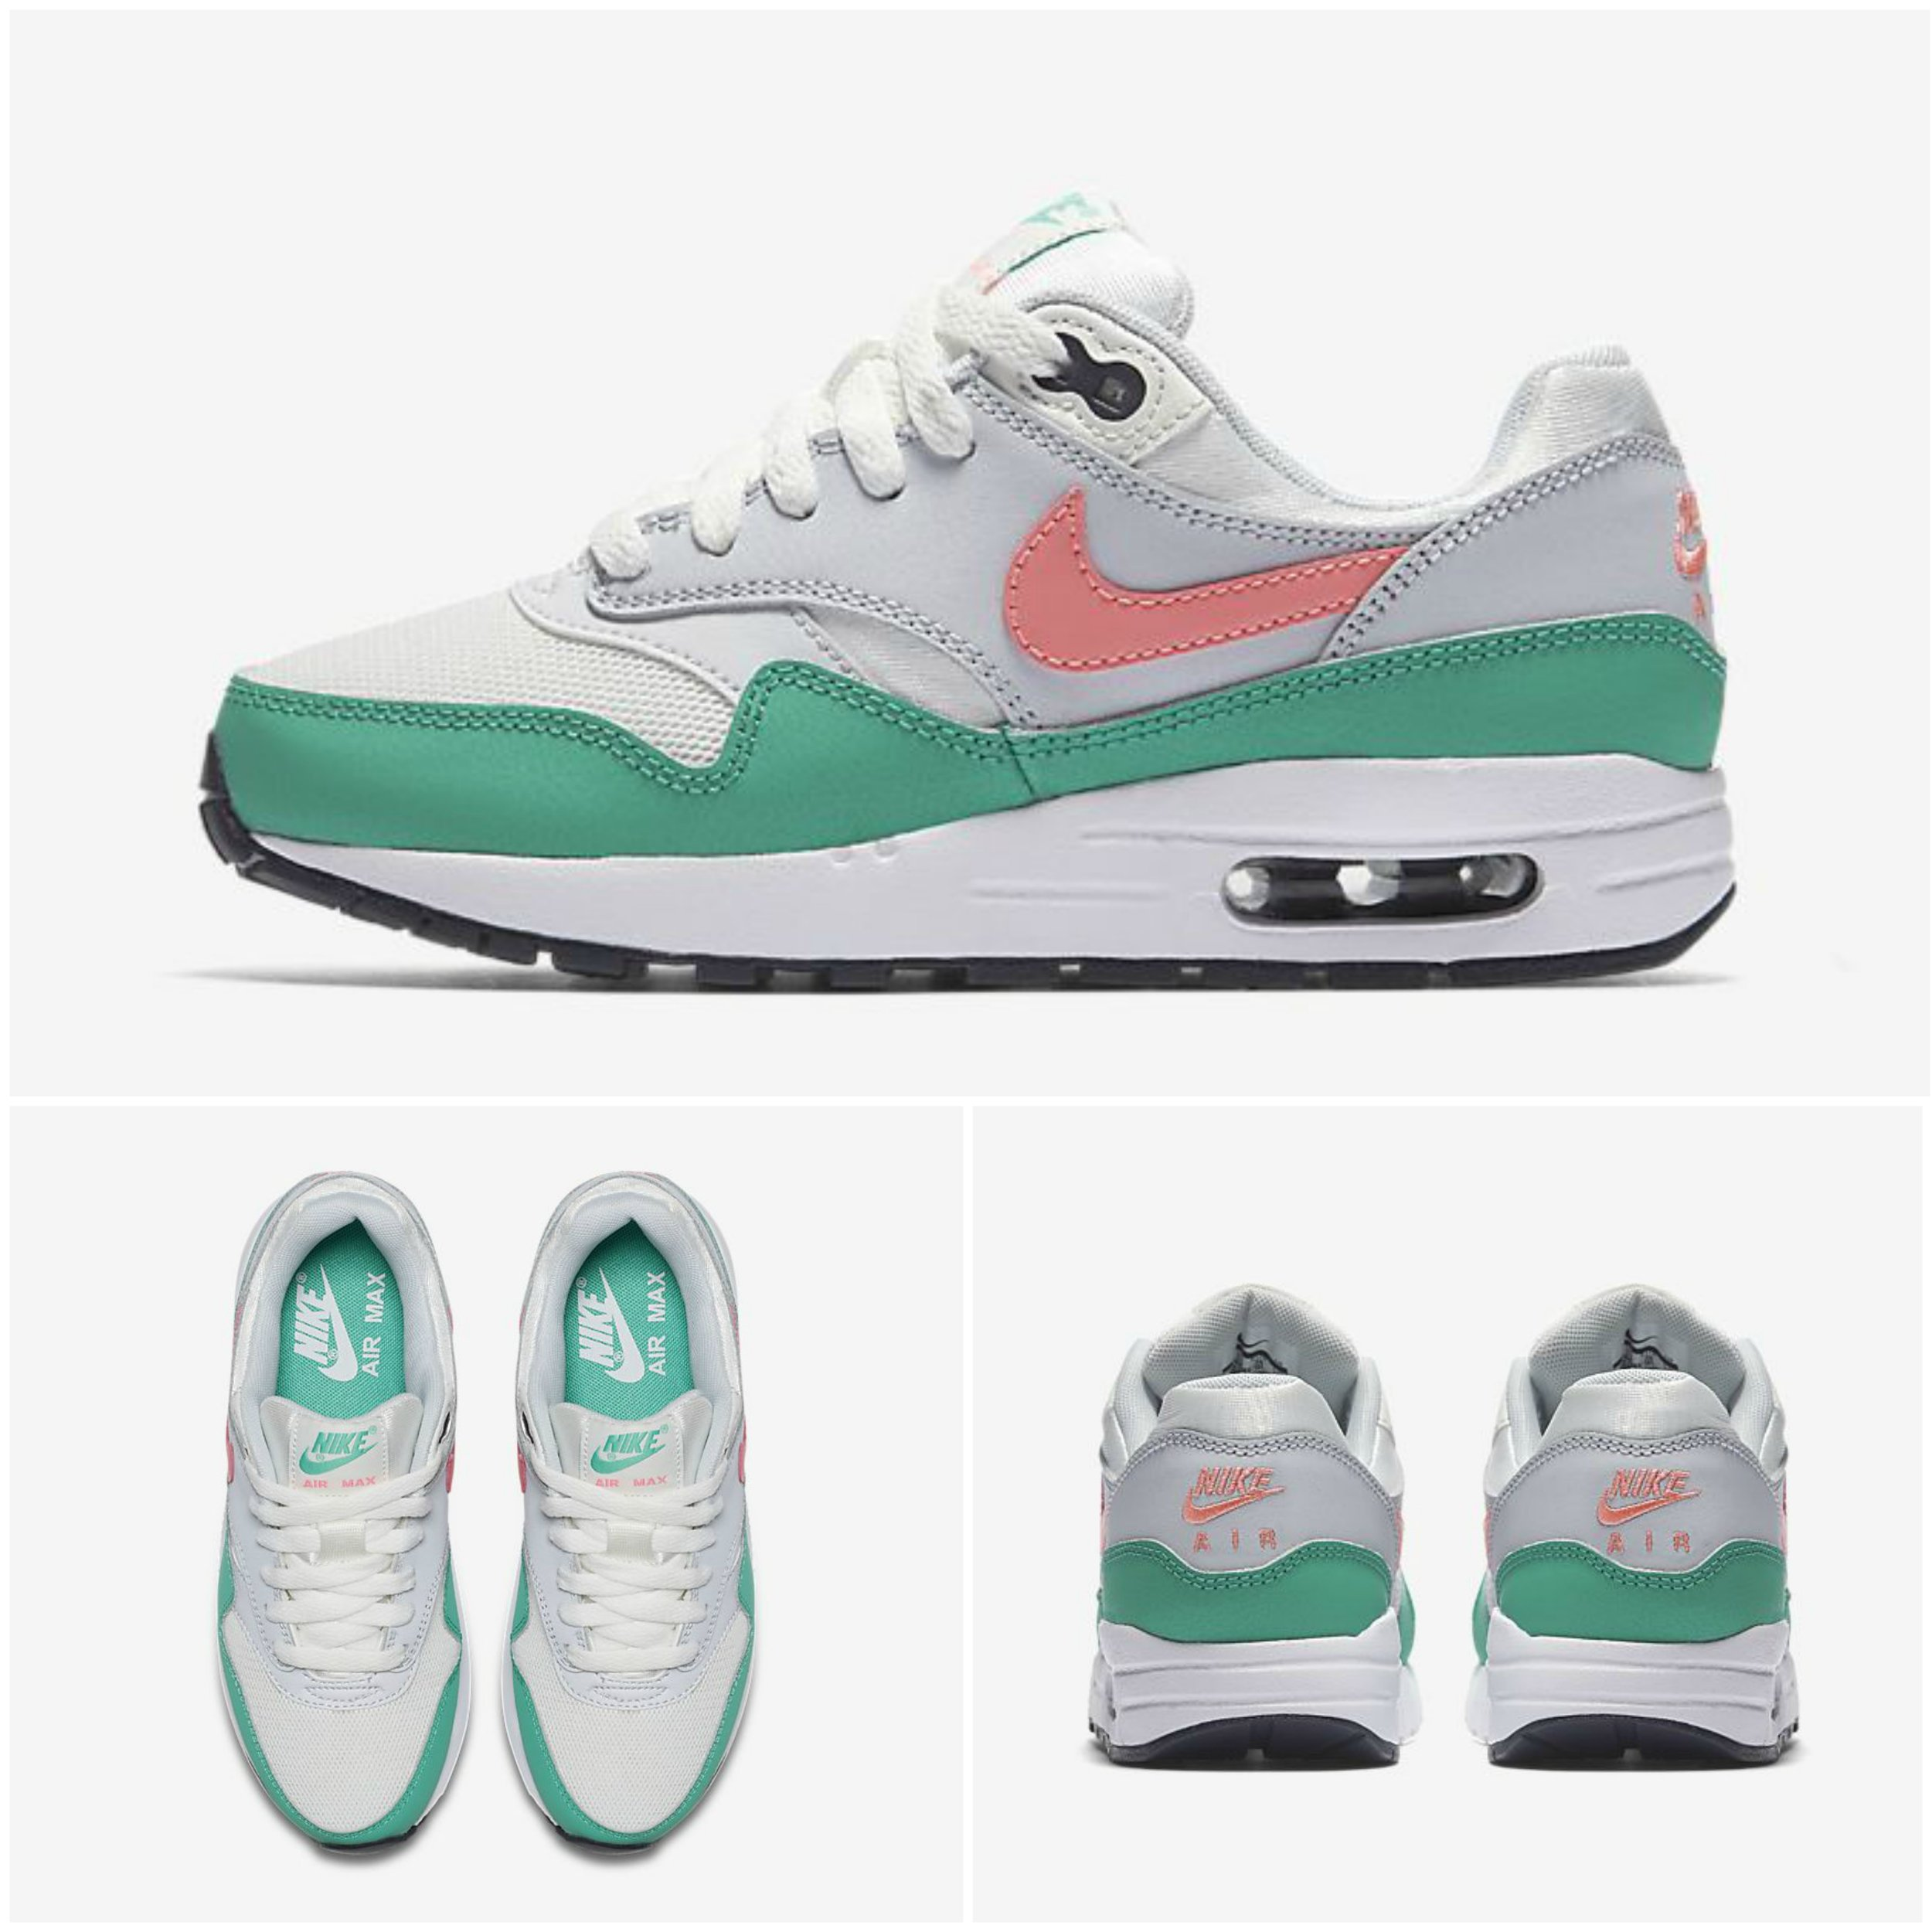 Now Available: GS Nike Air Max 1